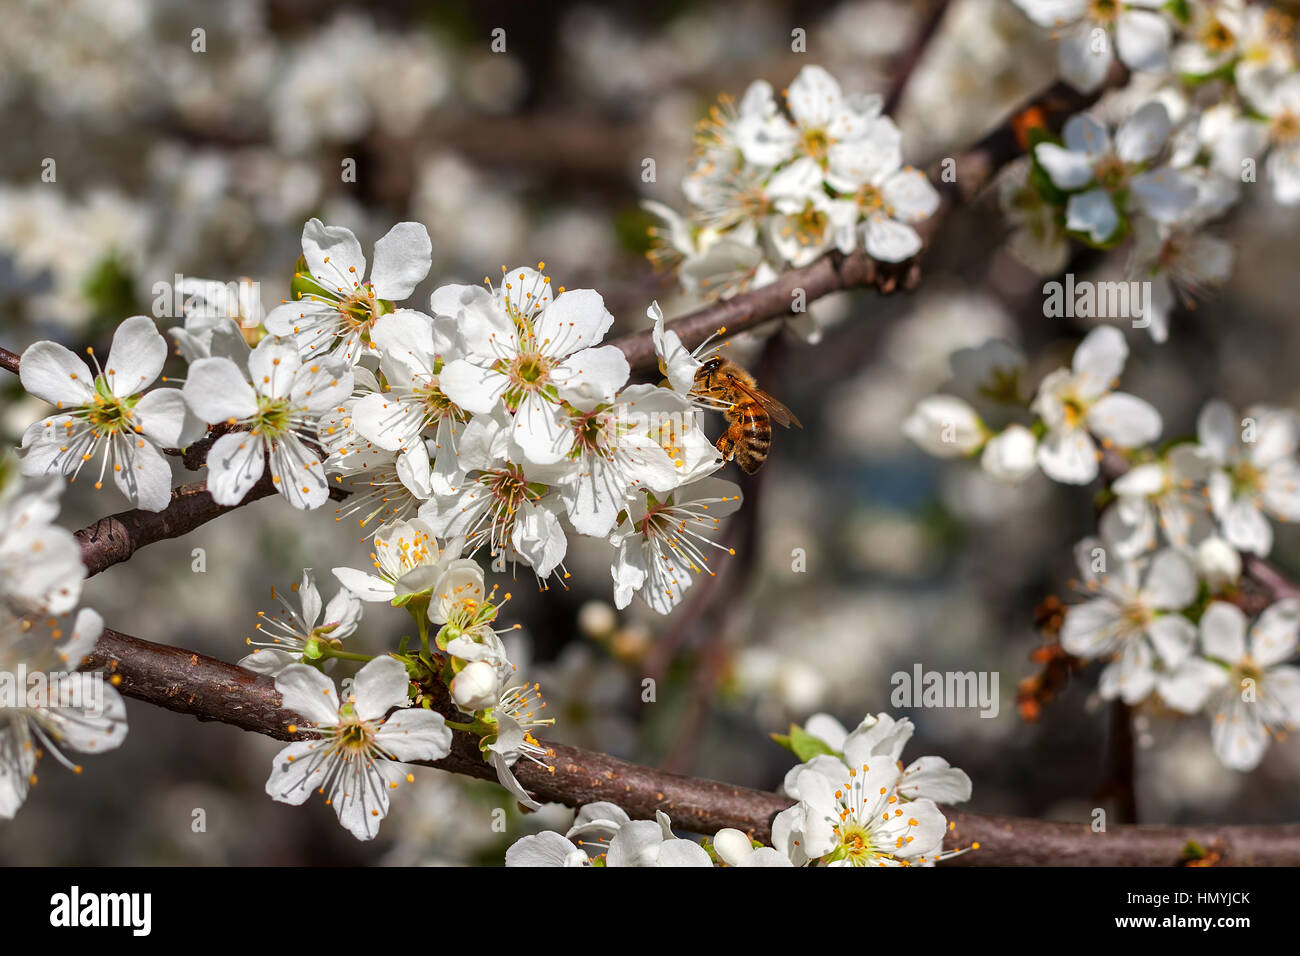 Bee collects pollen from white flower on  flowering tree in spring. - Stock Image